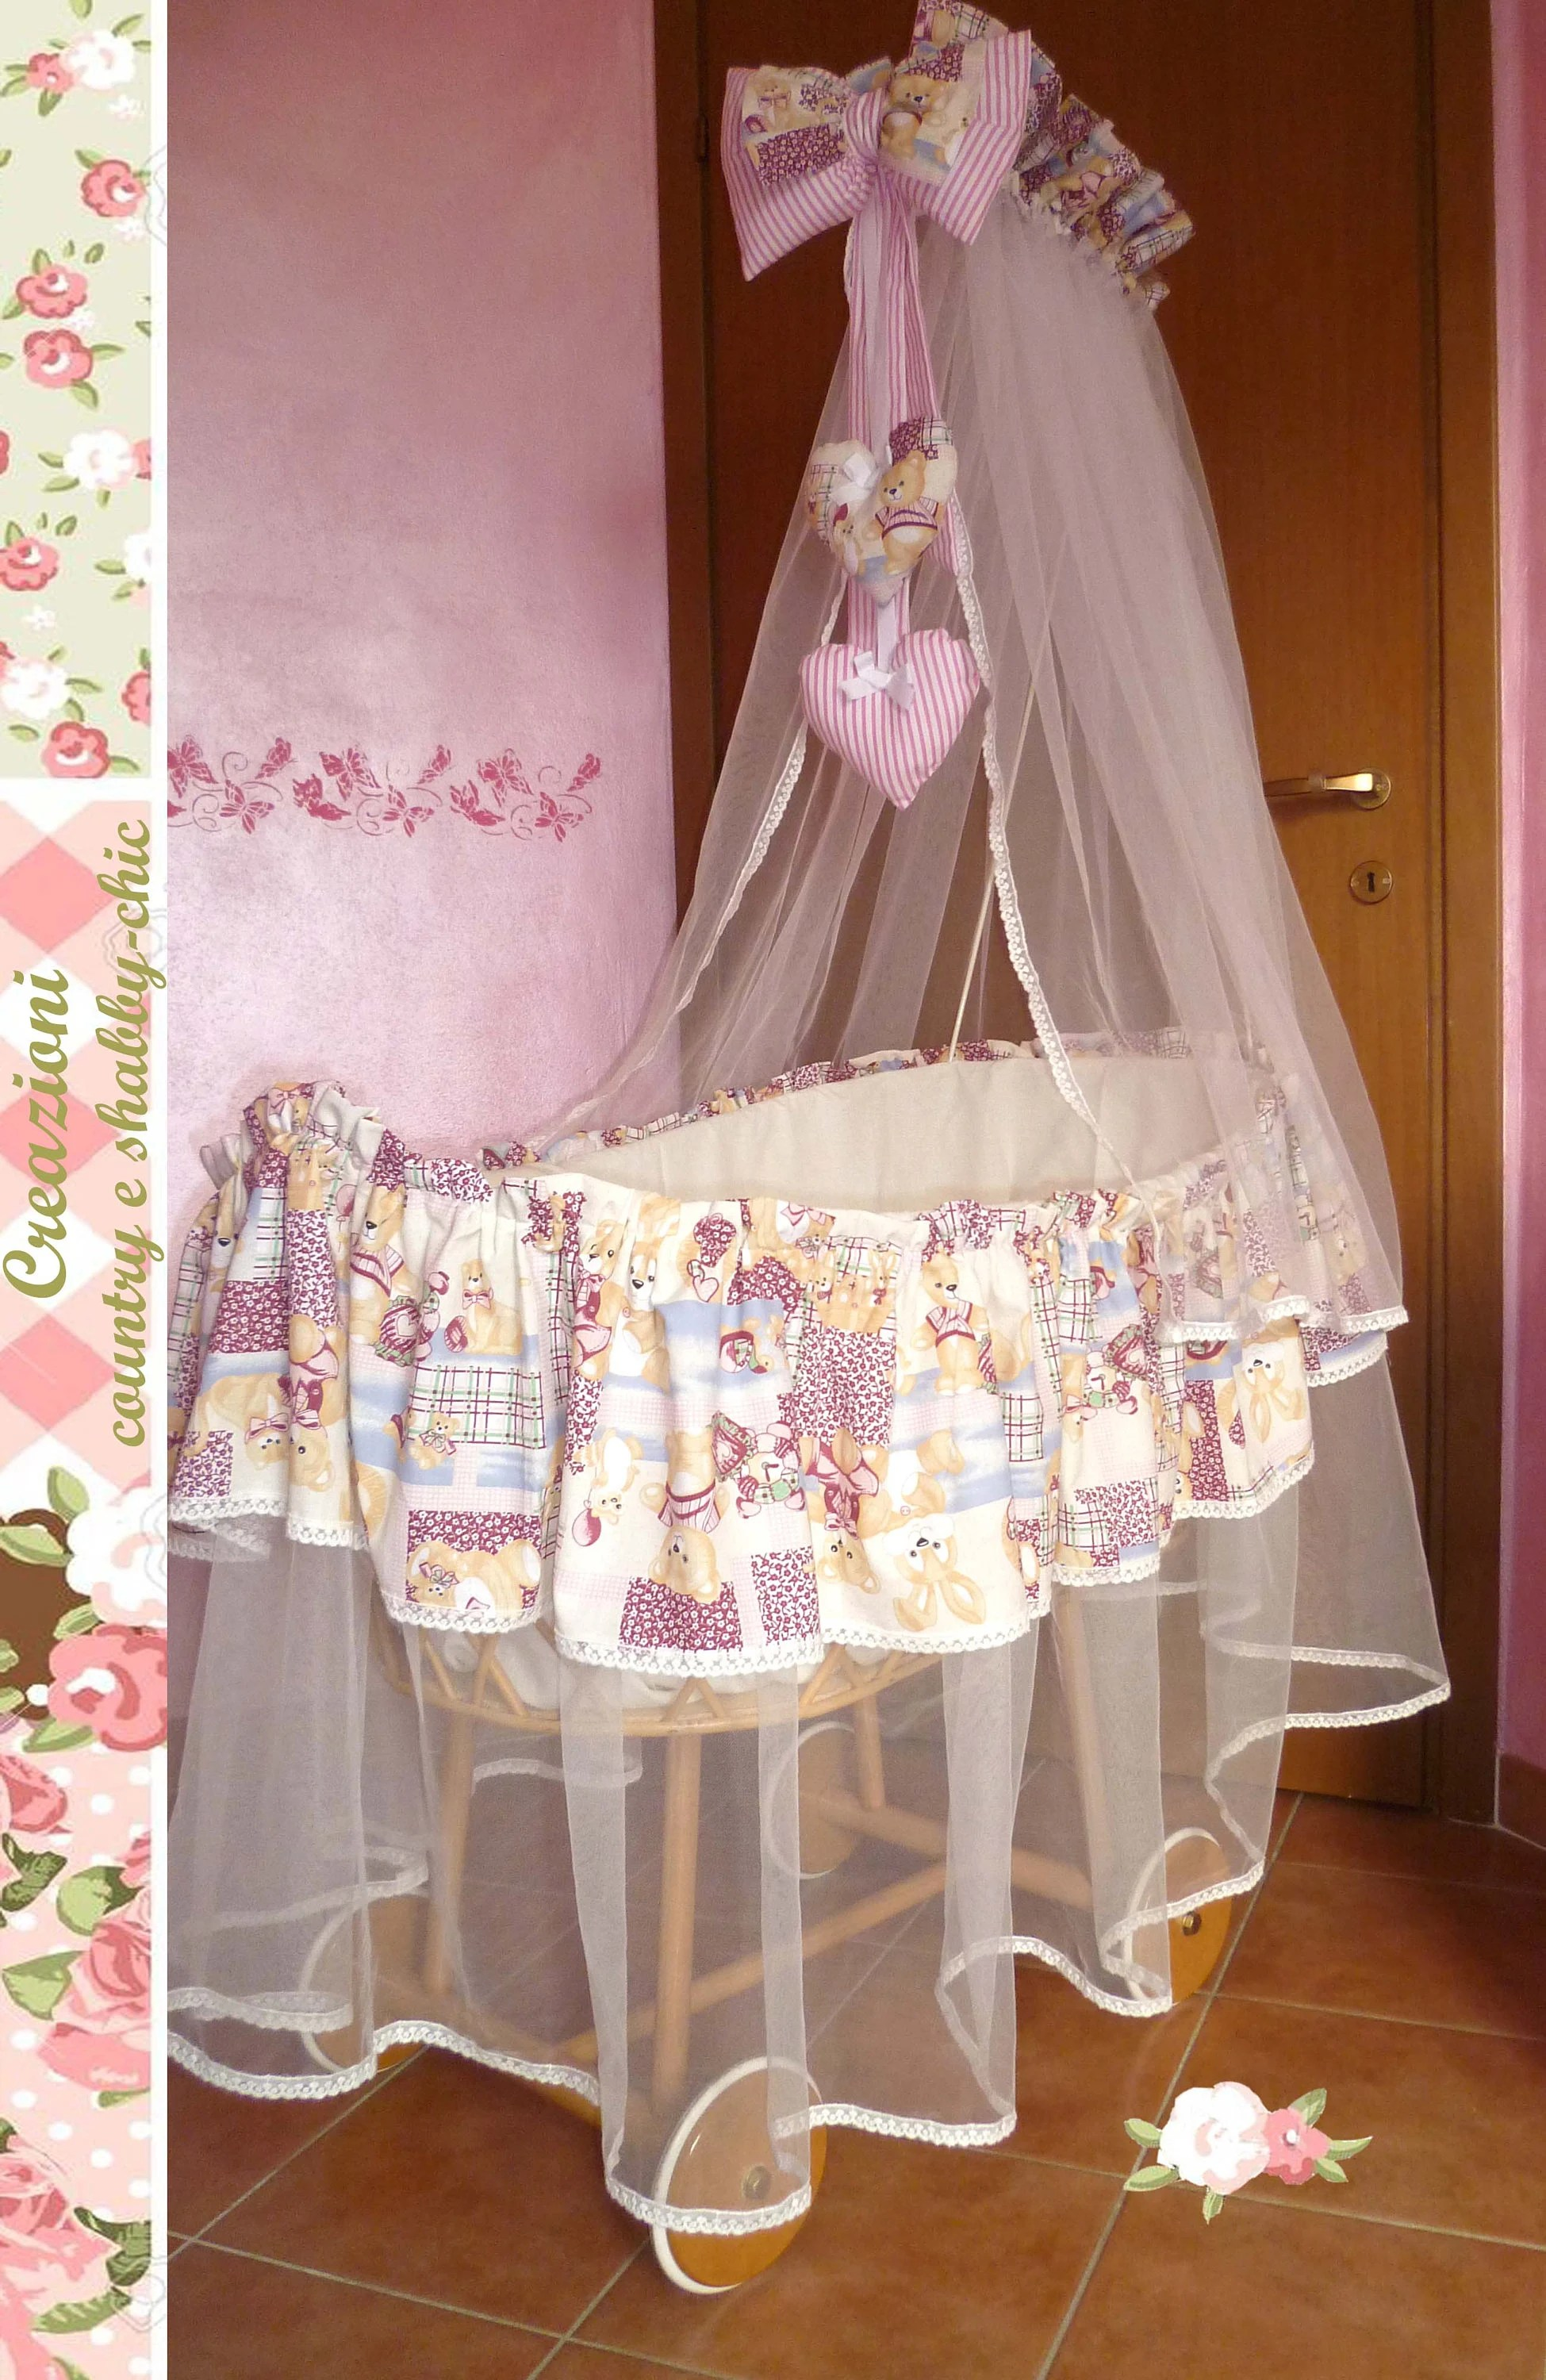 Baby Bassinet Linen Bassinet Coating Bassinet Baby Canopy Bassinet Skirt Cradle Skirt Bassinet Cover Birth Announcement Bow Baby Bed Linen Tulle Veil To Cot